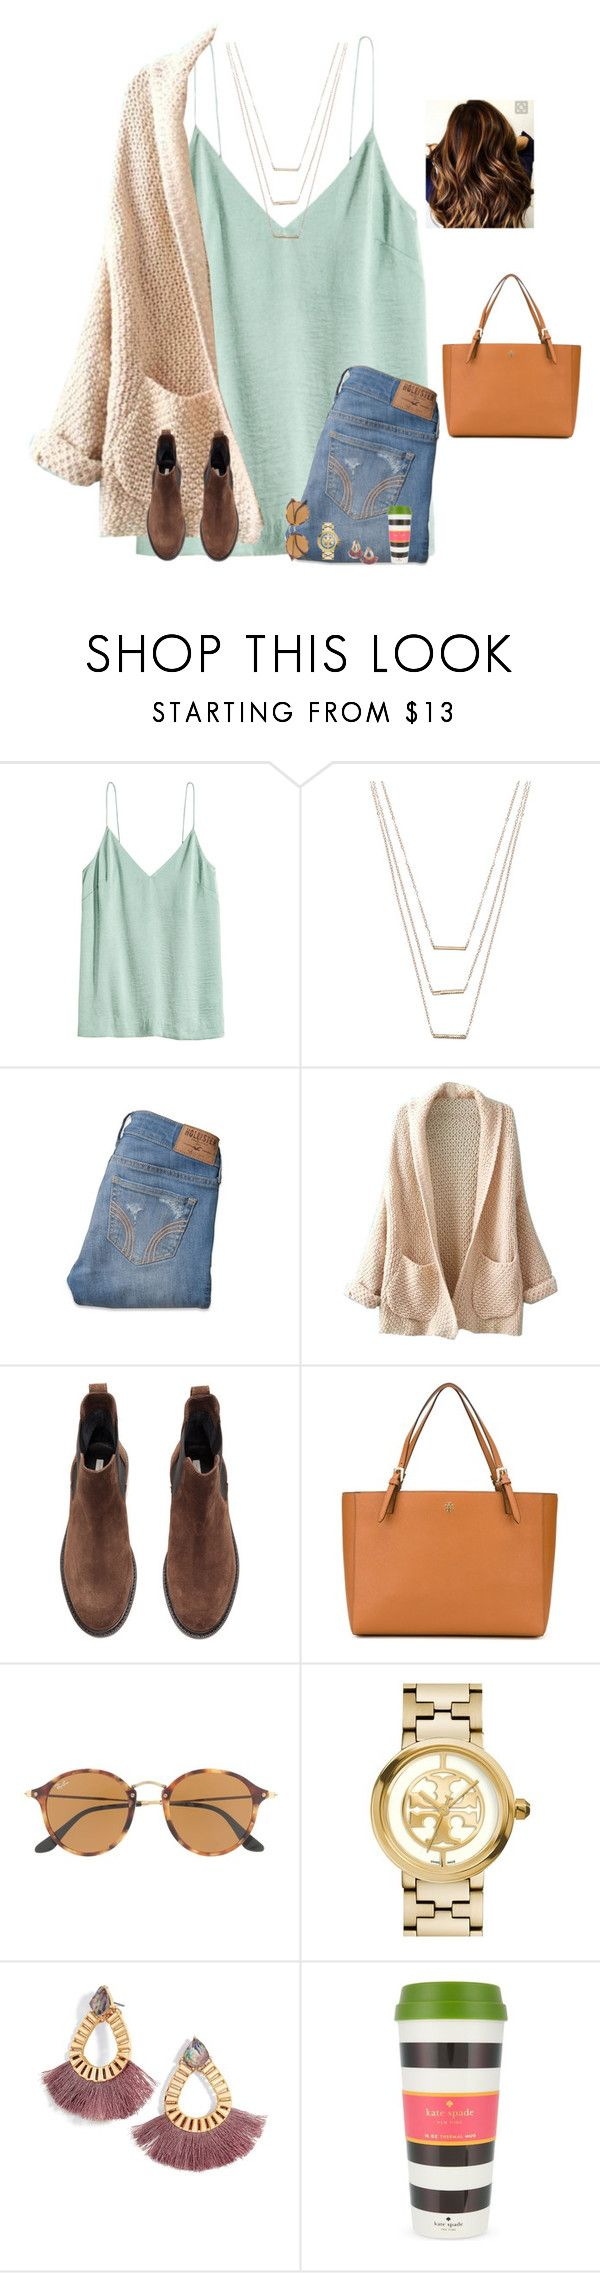 """If I follow you on Spotify, I probs stalk your playlists‍♀️"" by raquate1232 ❤ liked on Polyvore featuring H&M, ERTH, Hollister Co., WithChic, Tory Burch, Ray-Ban and Kate Spade"